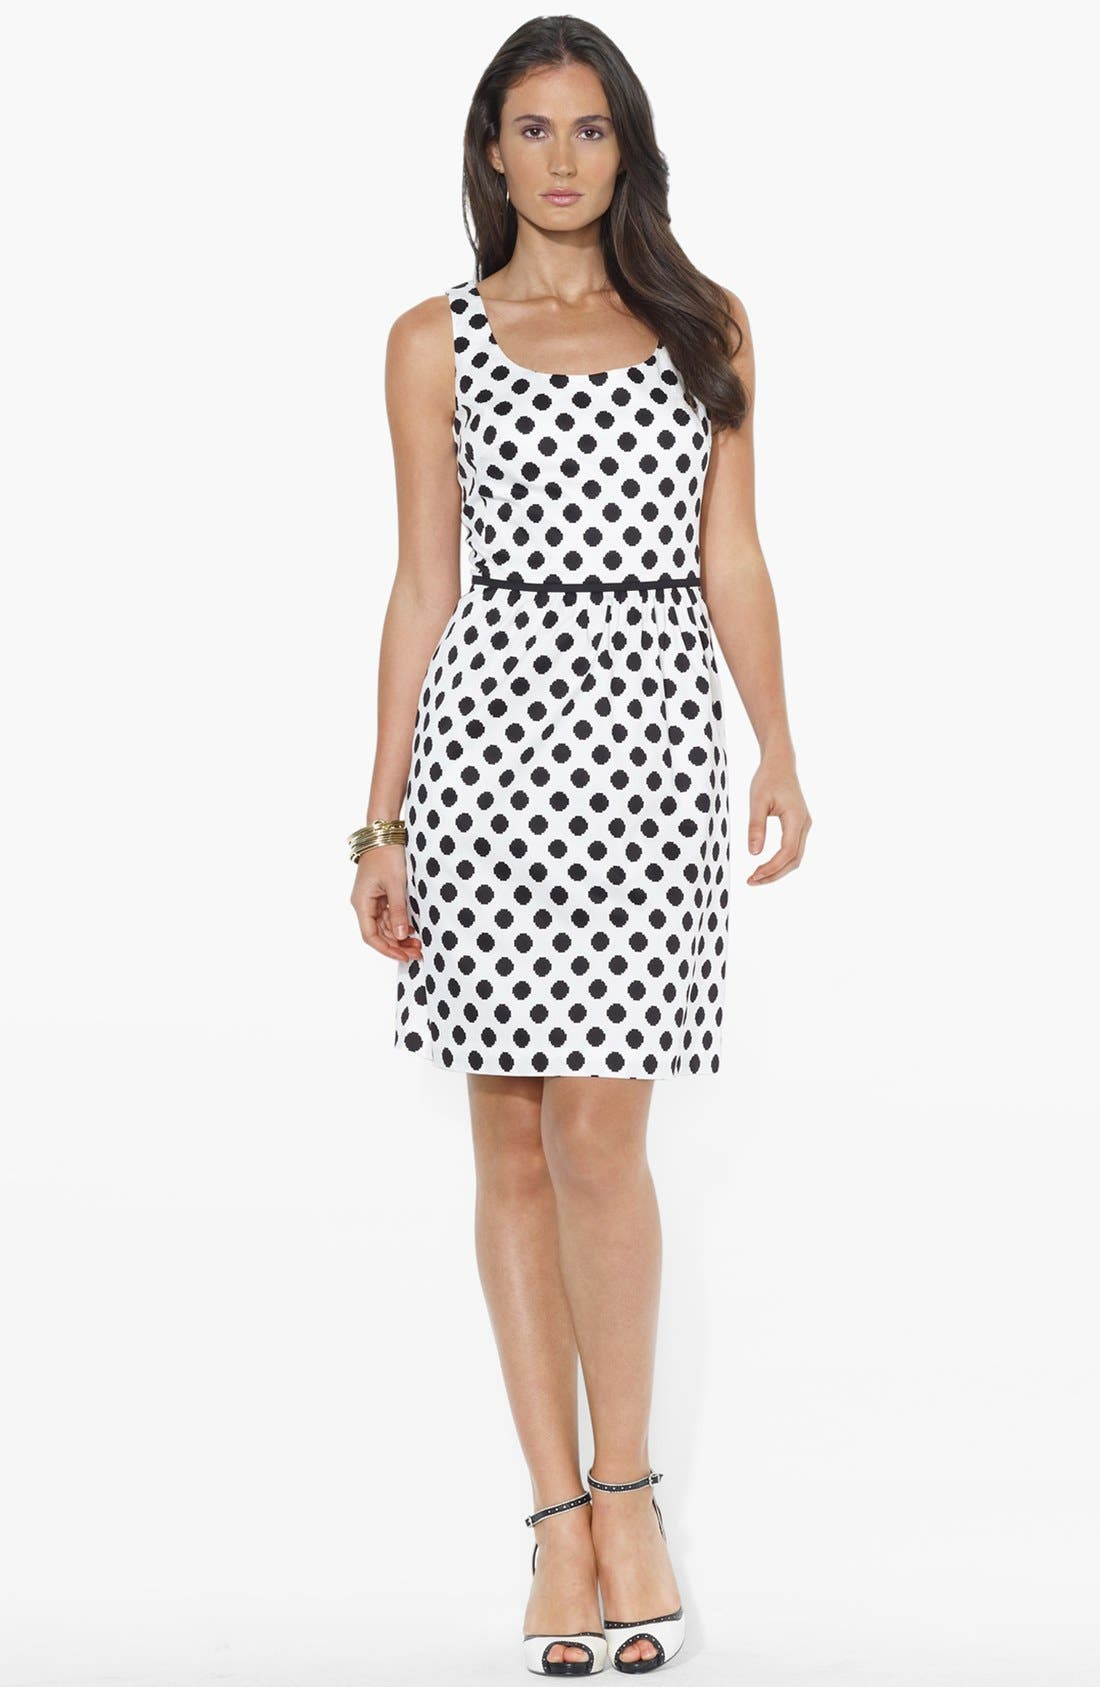 Alternate Image 1 Selected - Lauren Ralph Lauren Polka Dot Fit & Flare Dress